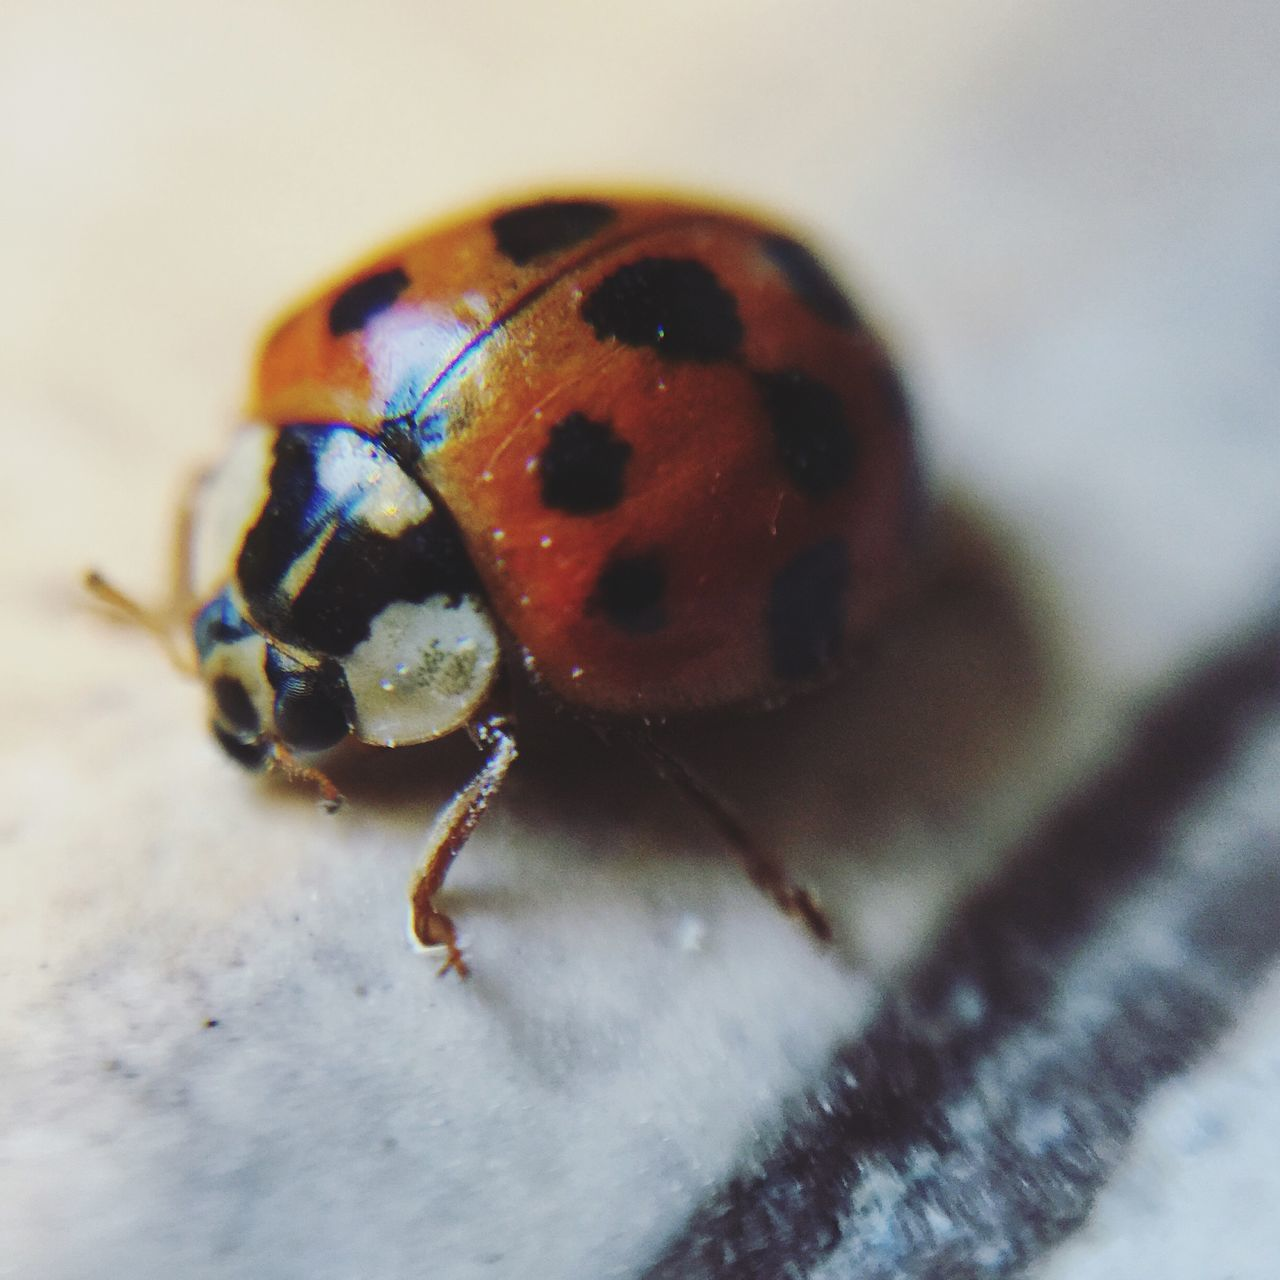 Close-Up Of Ladybug On Table